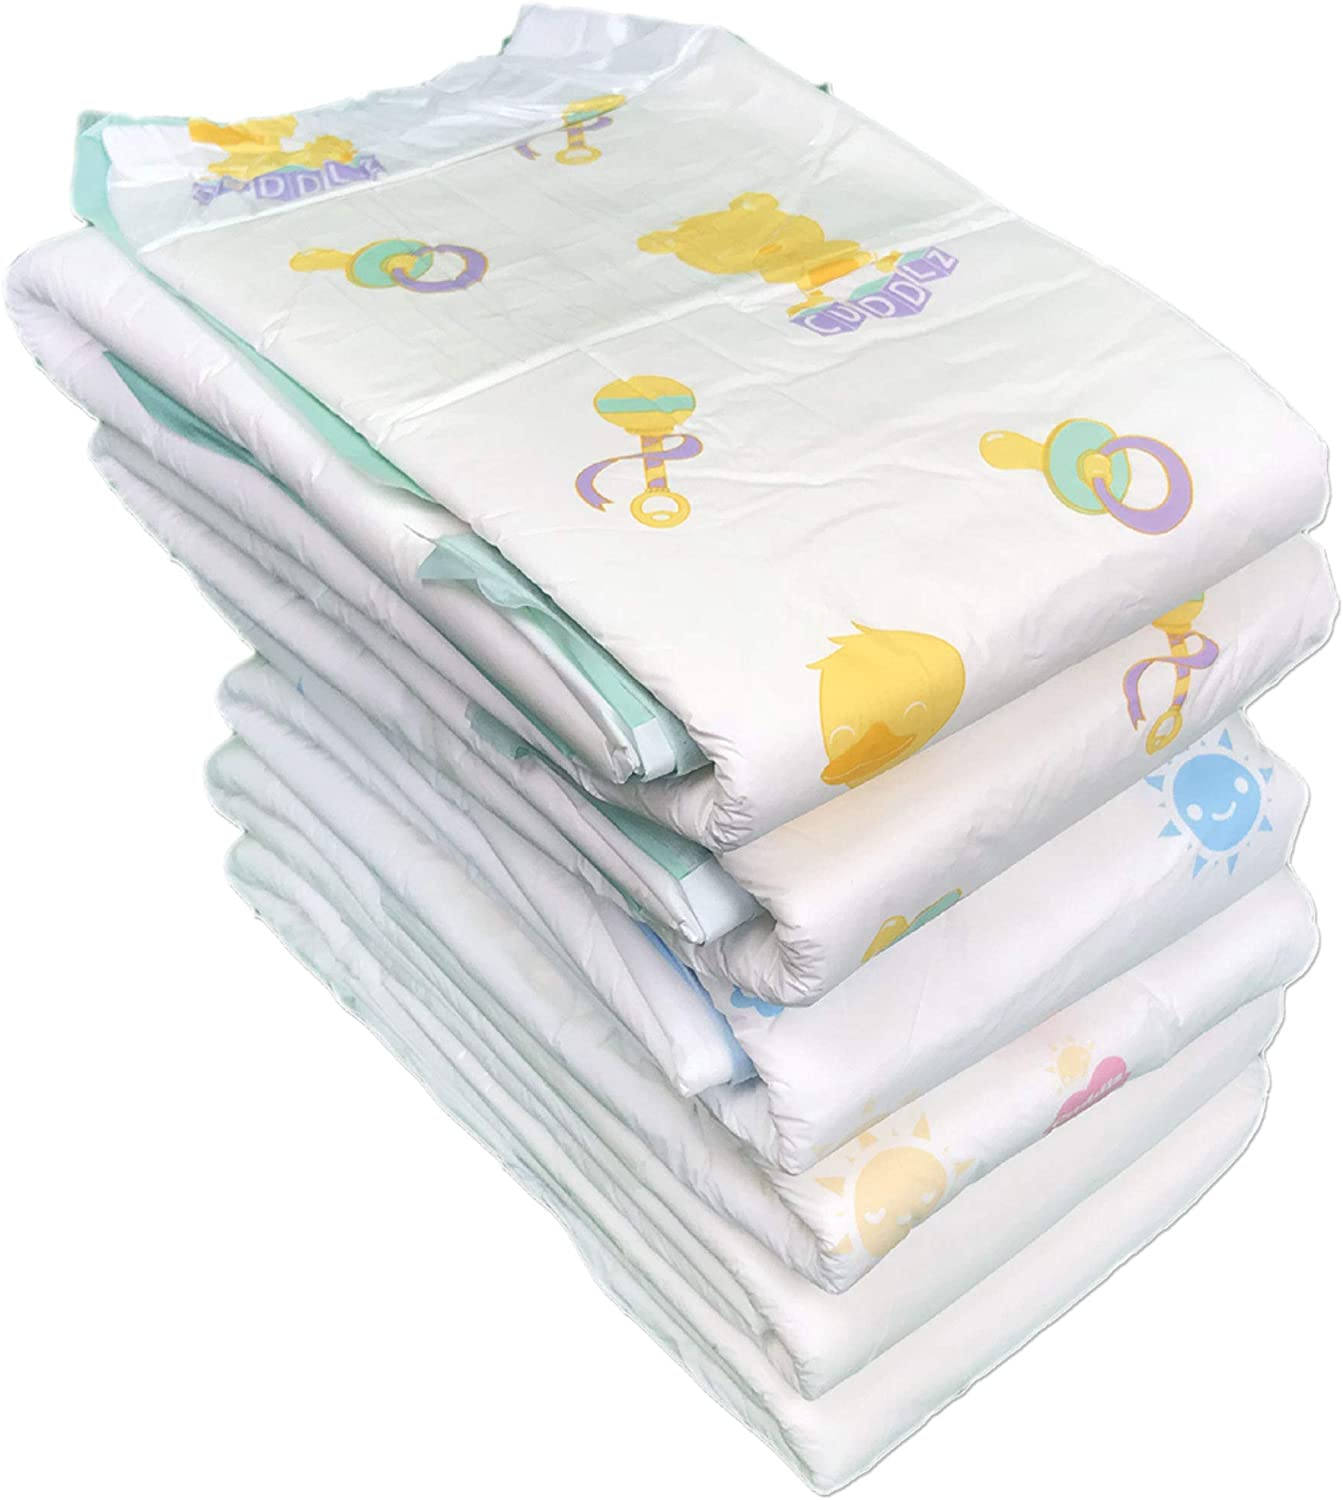 Cuddlz Sample Pack of 7 Adult Nappies//Diapers Size Medium